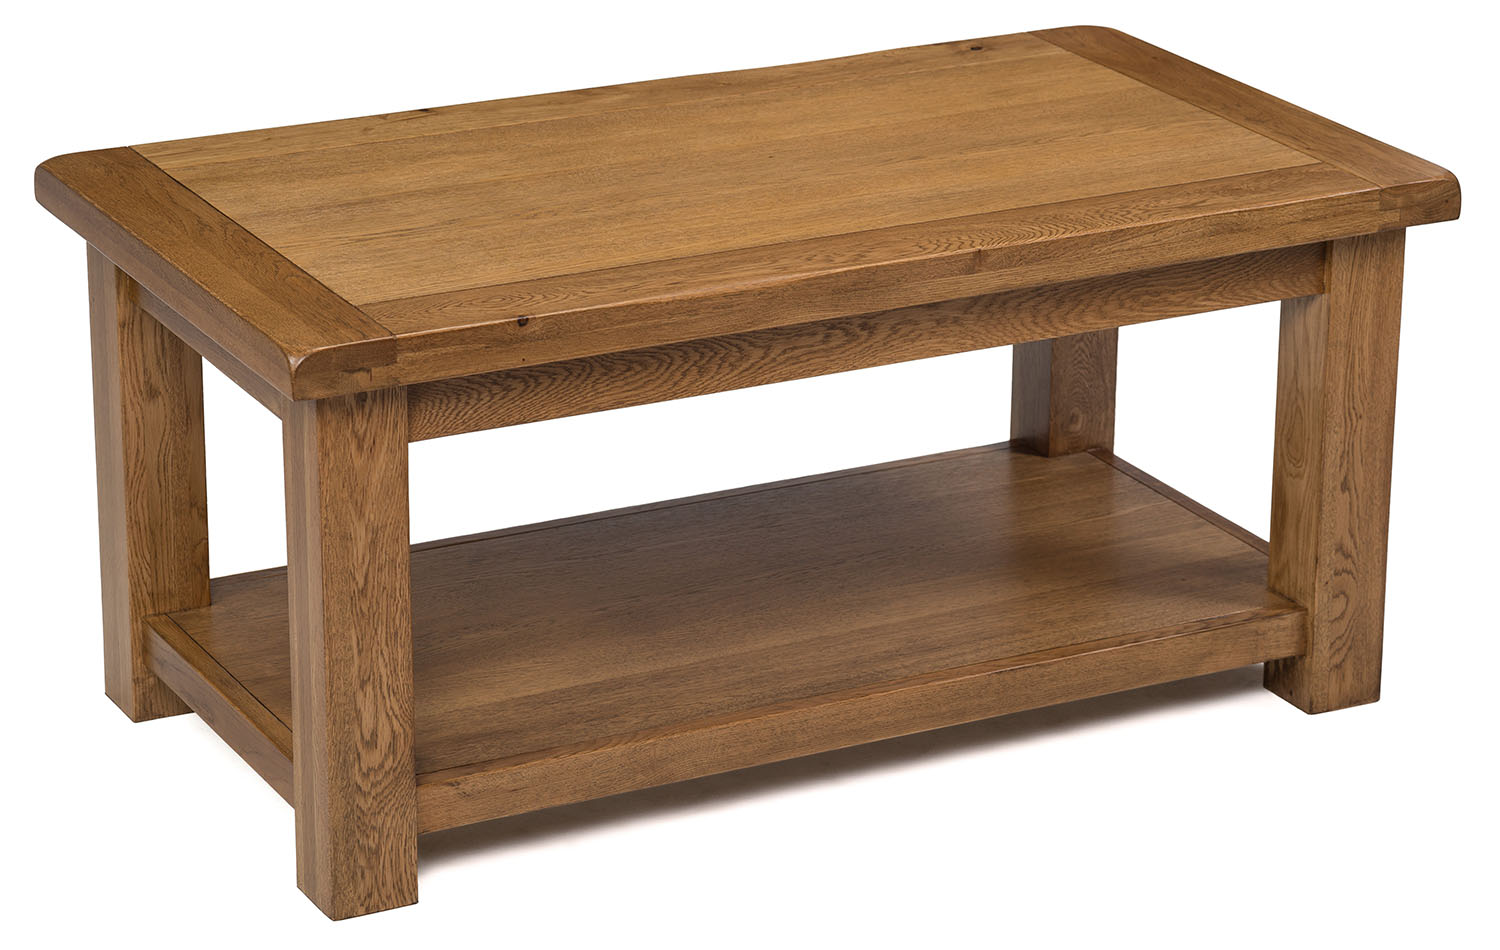 Large Dark Oak Coffee Table Solid Wood Rectangular Lounge Storage Ebay